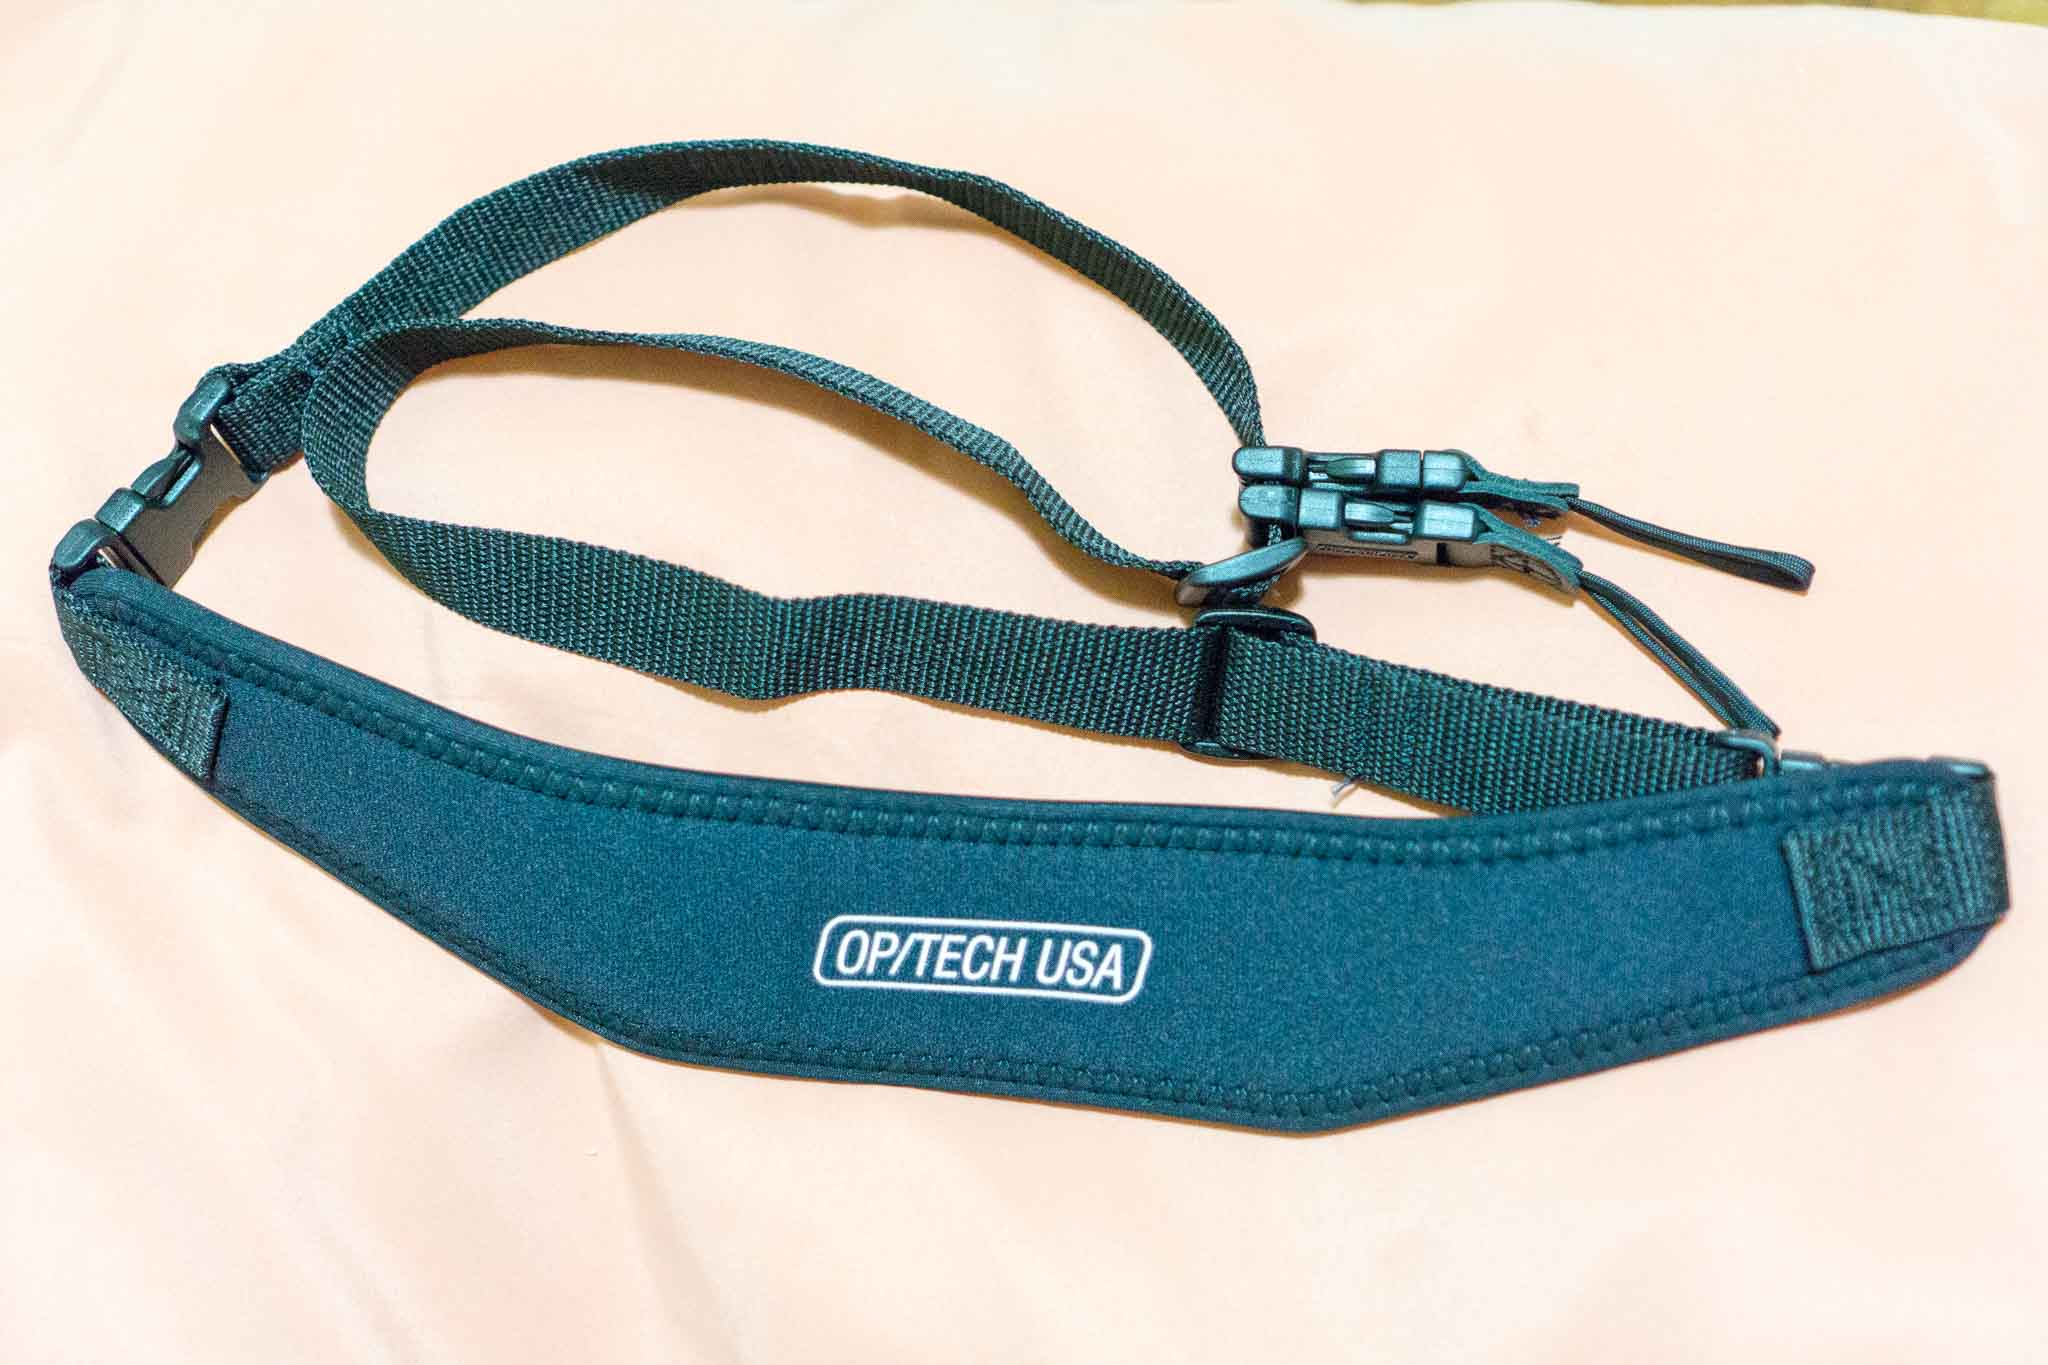 Op tech fashion strap 74